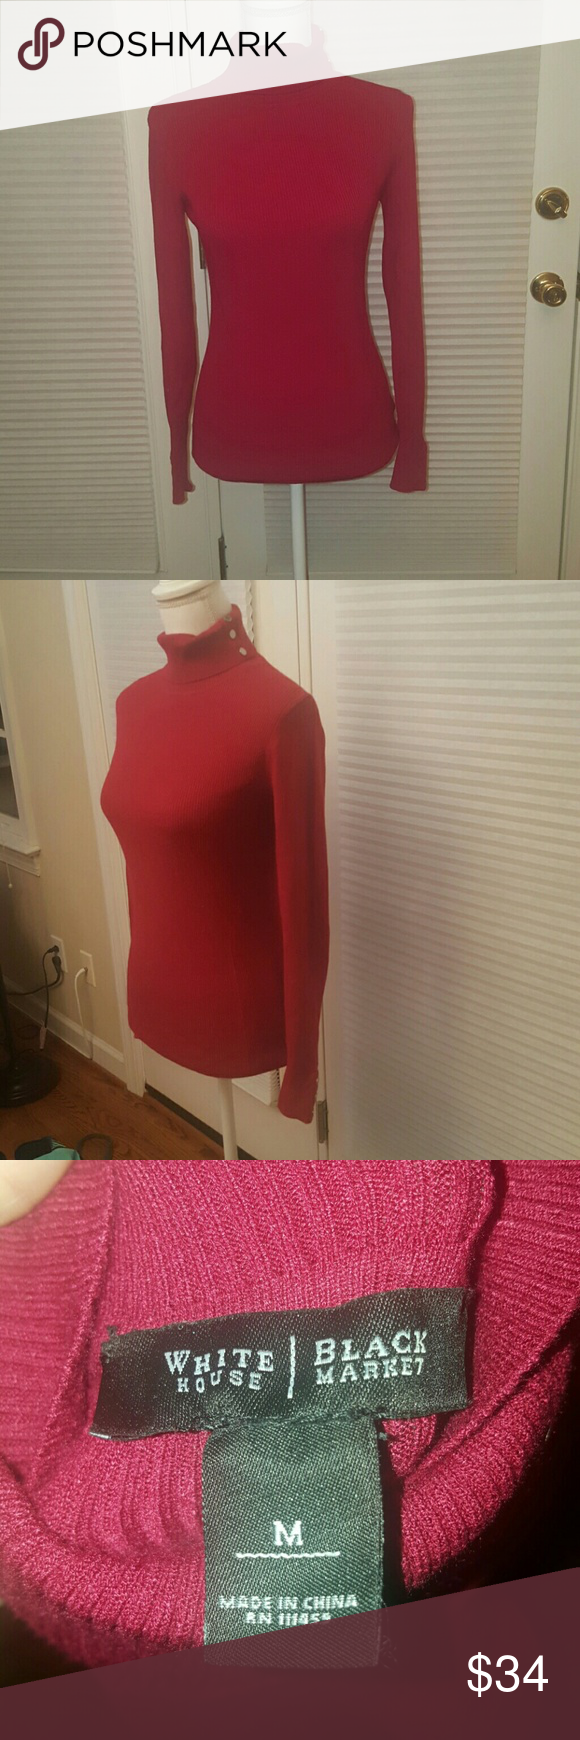 WHBM red turtleneck sweater size Medium Gorgeous White House Black Market red turtleneck sweater.  Size medium. Once wore this for a few hours  once.  Excellent condition.  Silver buttons along sleeves and collar. White House Black Market Sweaters Cowl & Turtlenecks